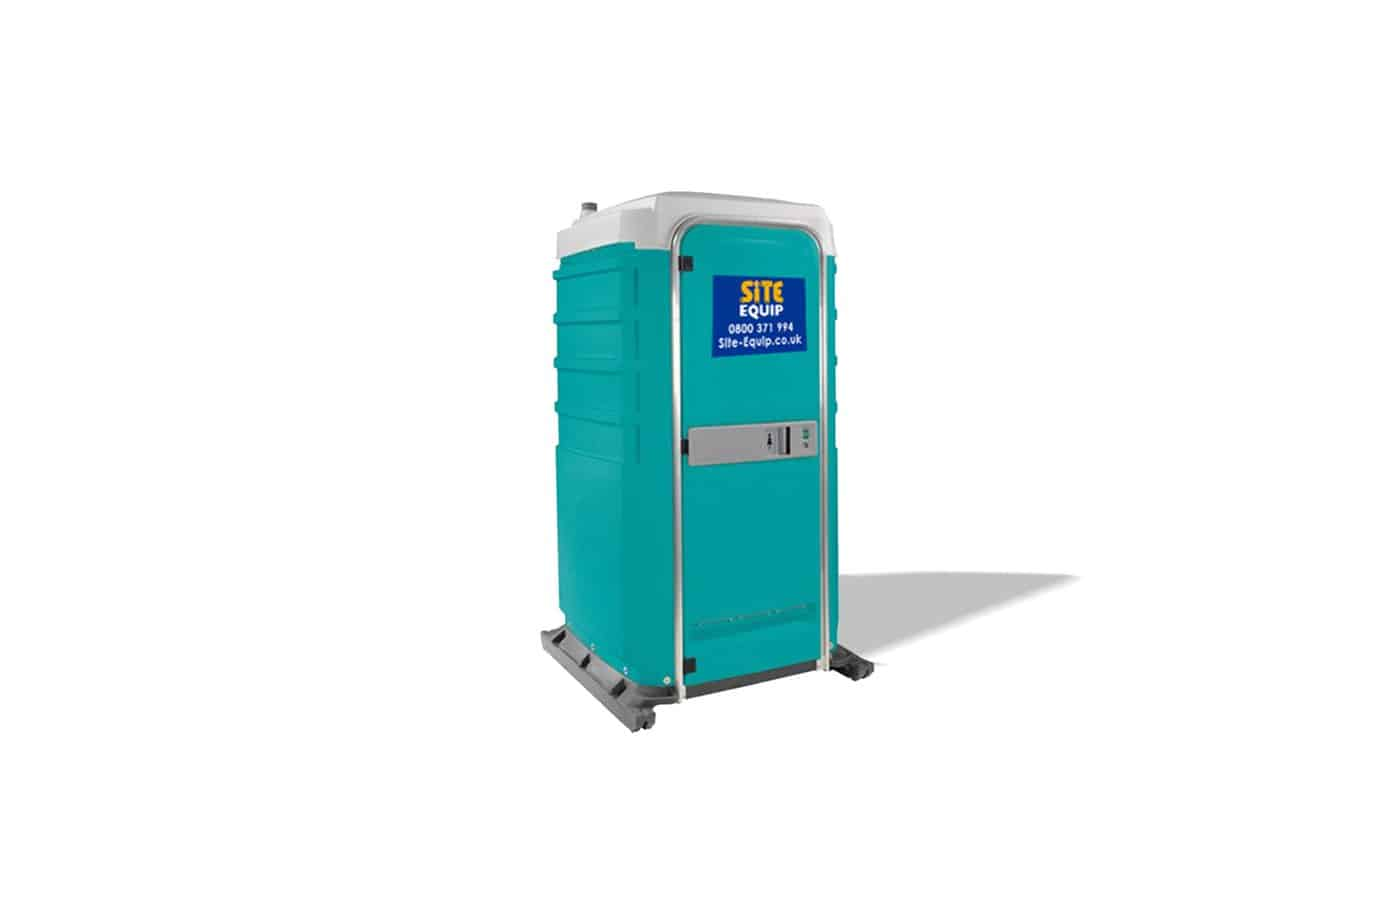 Mains Connected Portable Toilet Site Equip 0800 371994